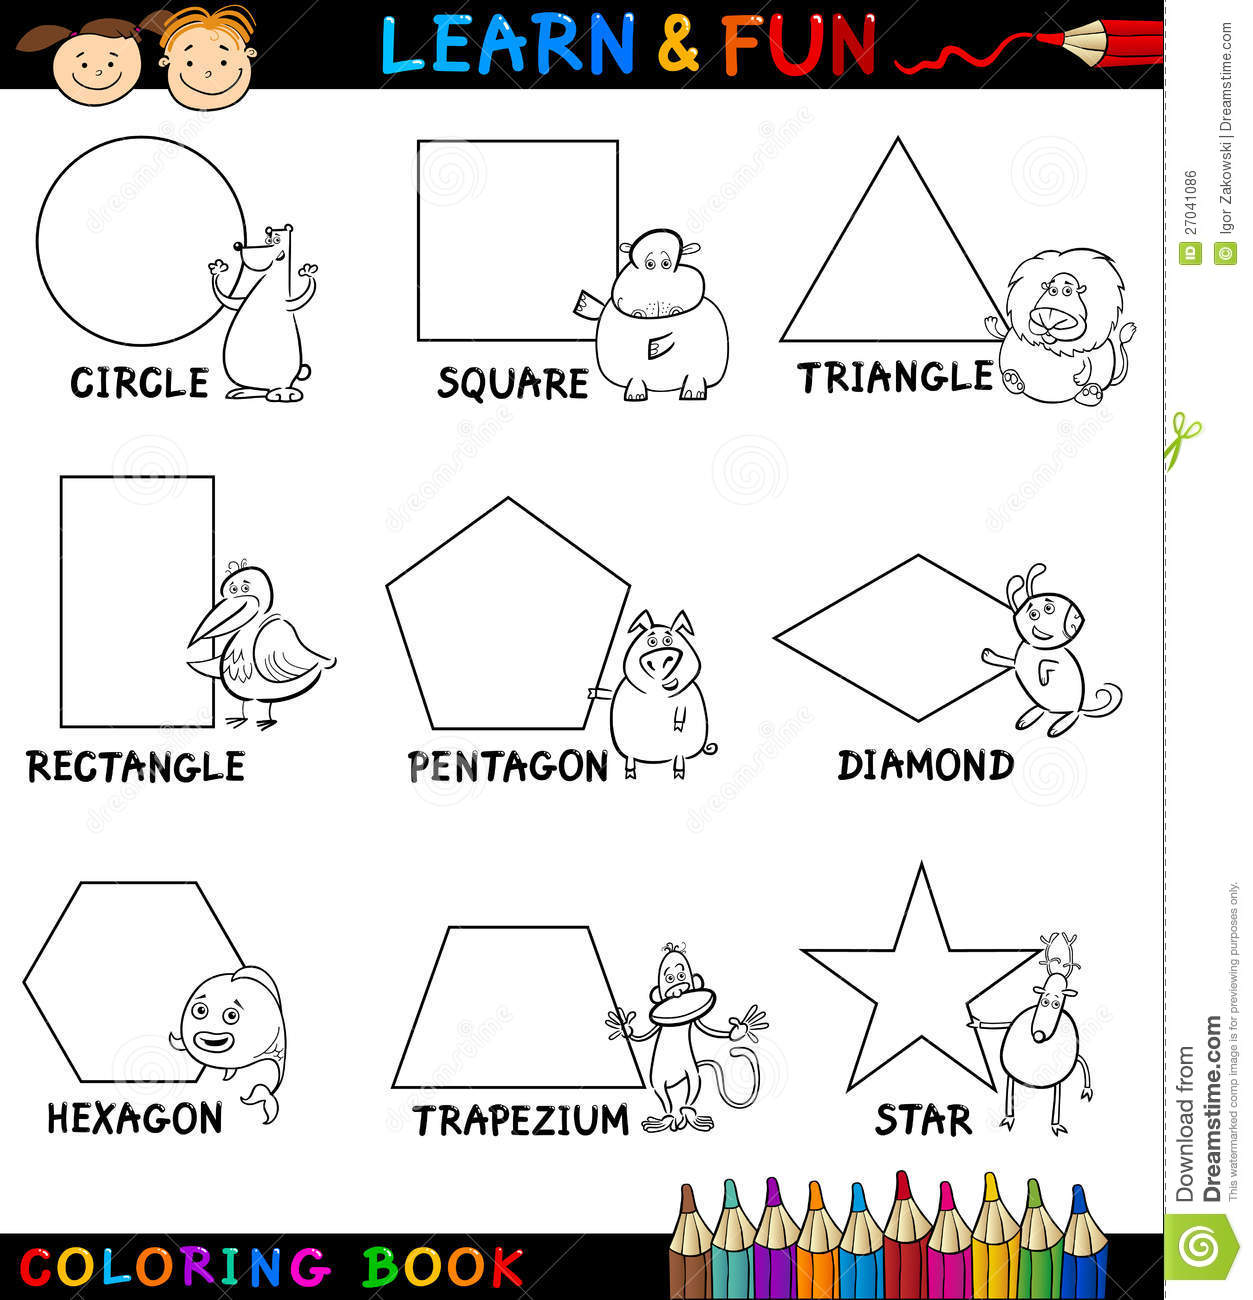 Basic Shapes With Animals For Coloring Royalty Free Stock ...